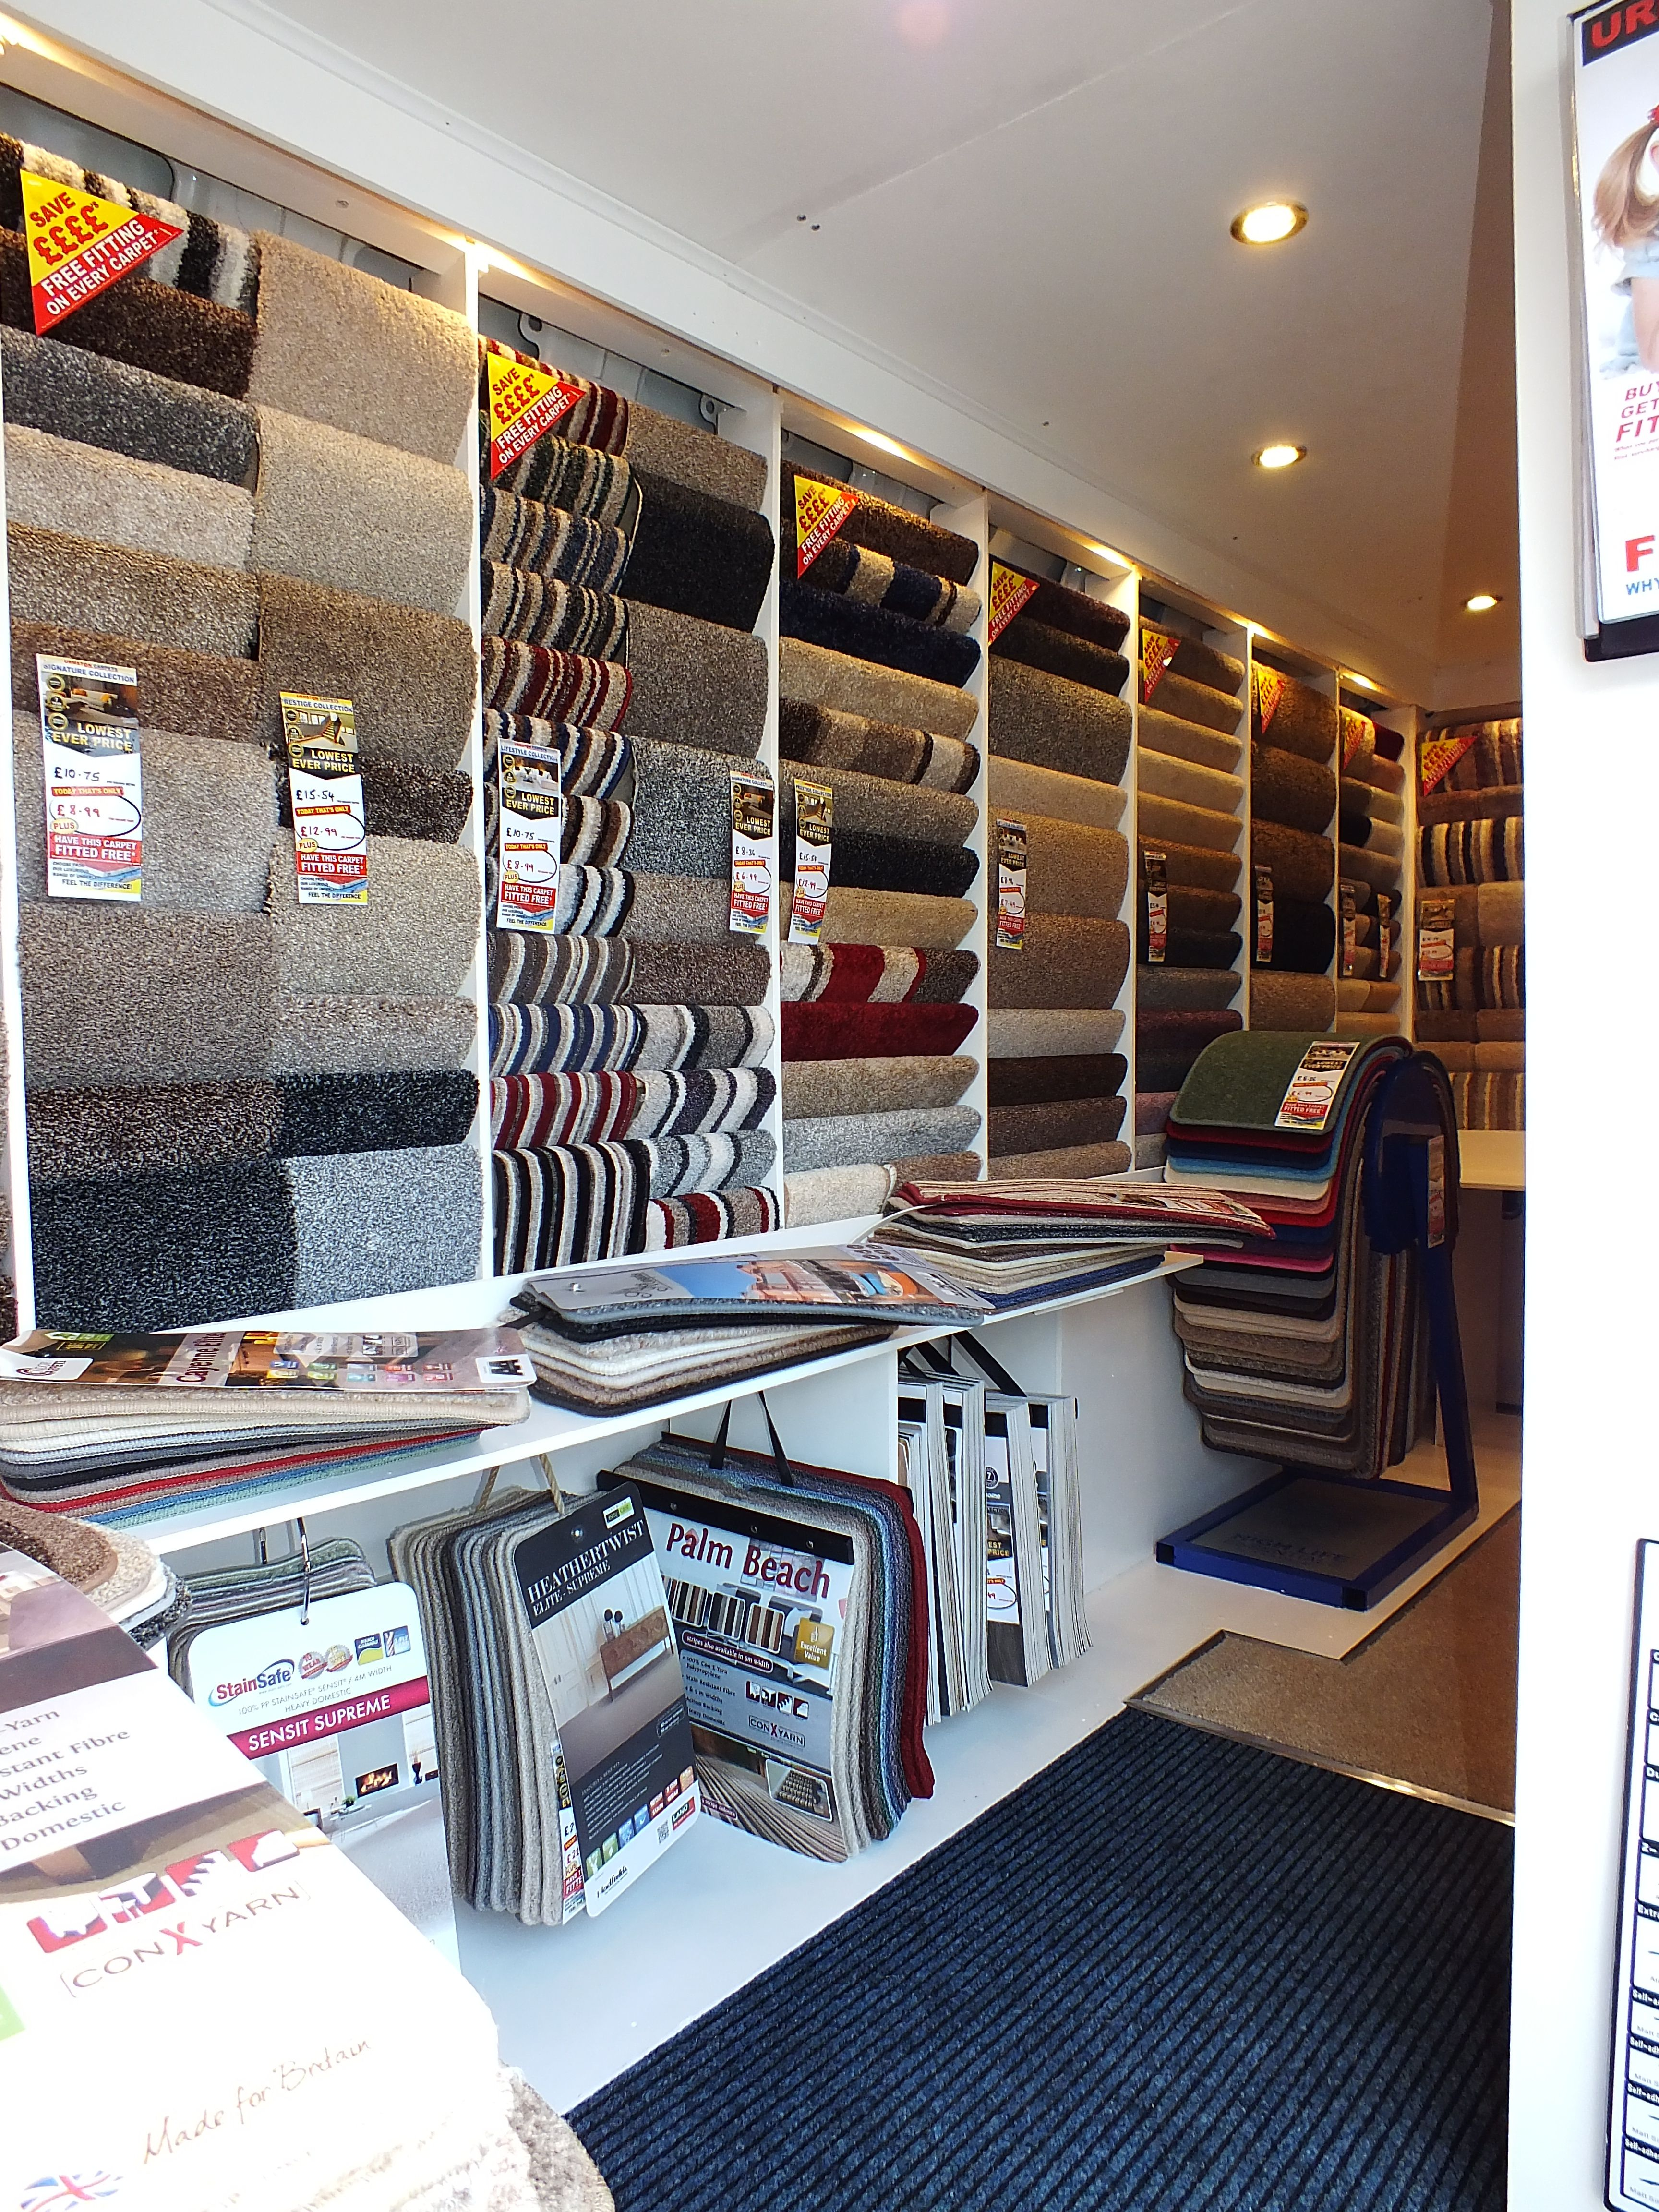 Great Choices From Urmston Carpets Warehouse Http Urmstoncarpets Co Uk Carpet Shops Carpet Pricing Carpet Warehouse